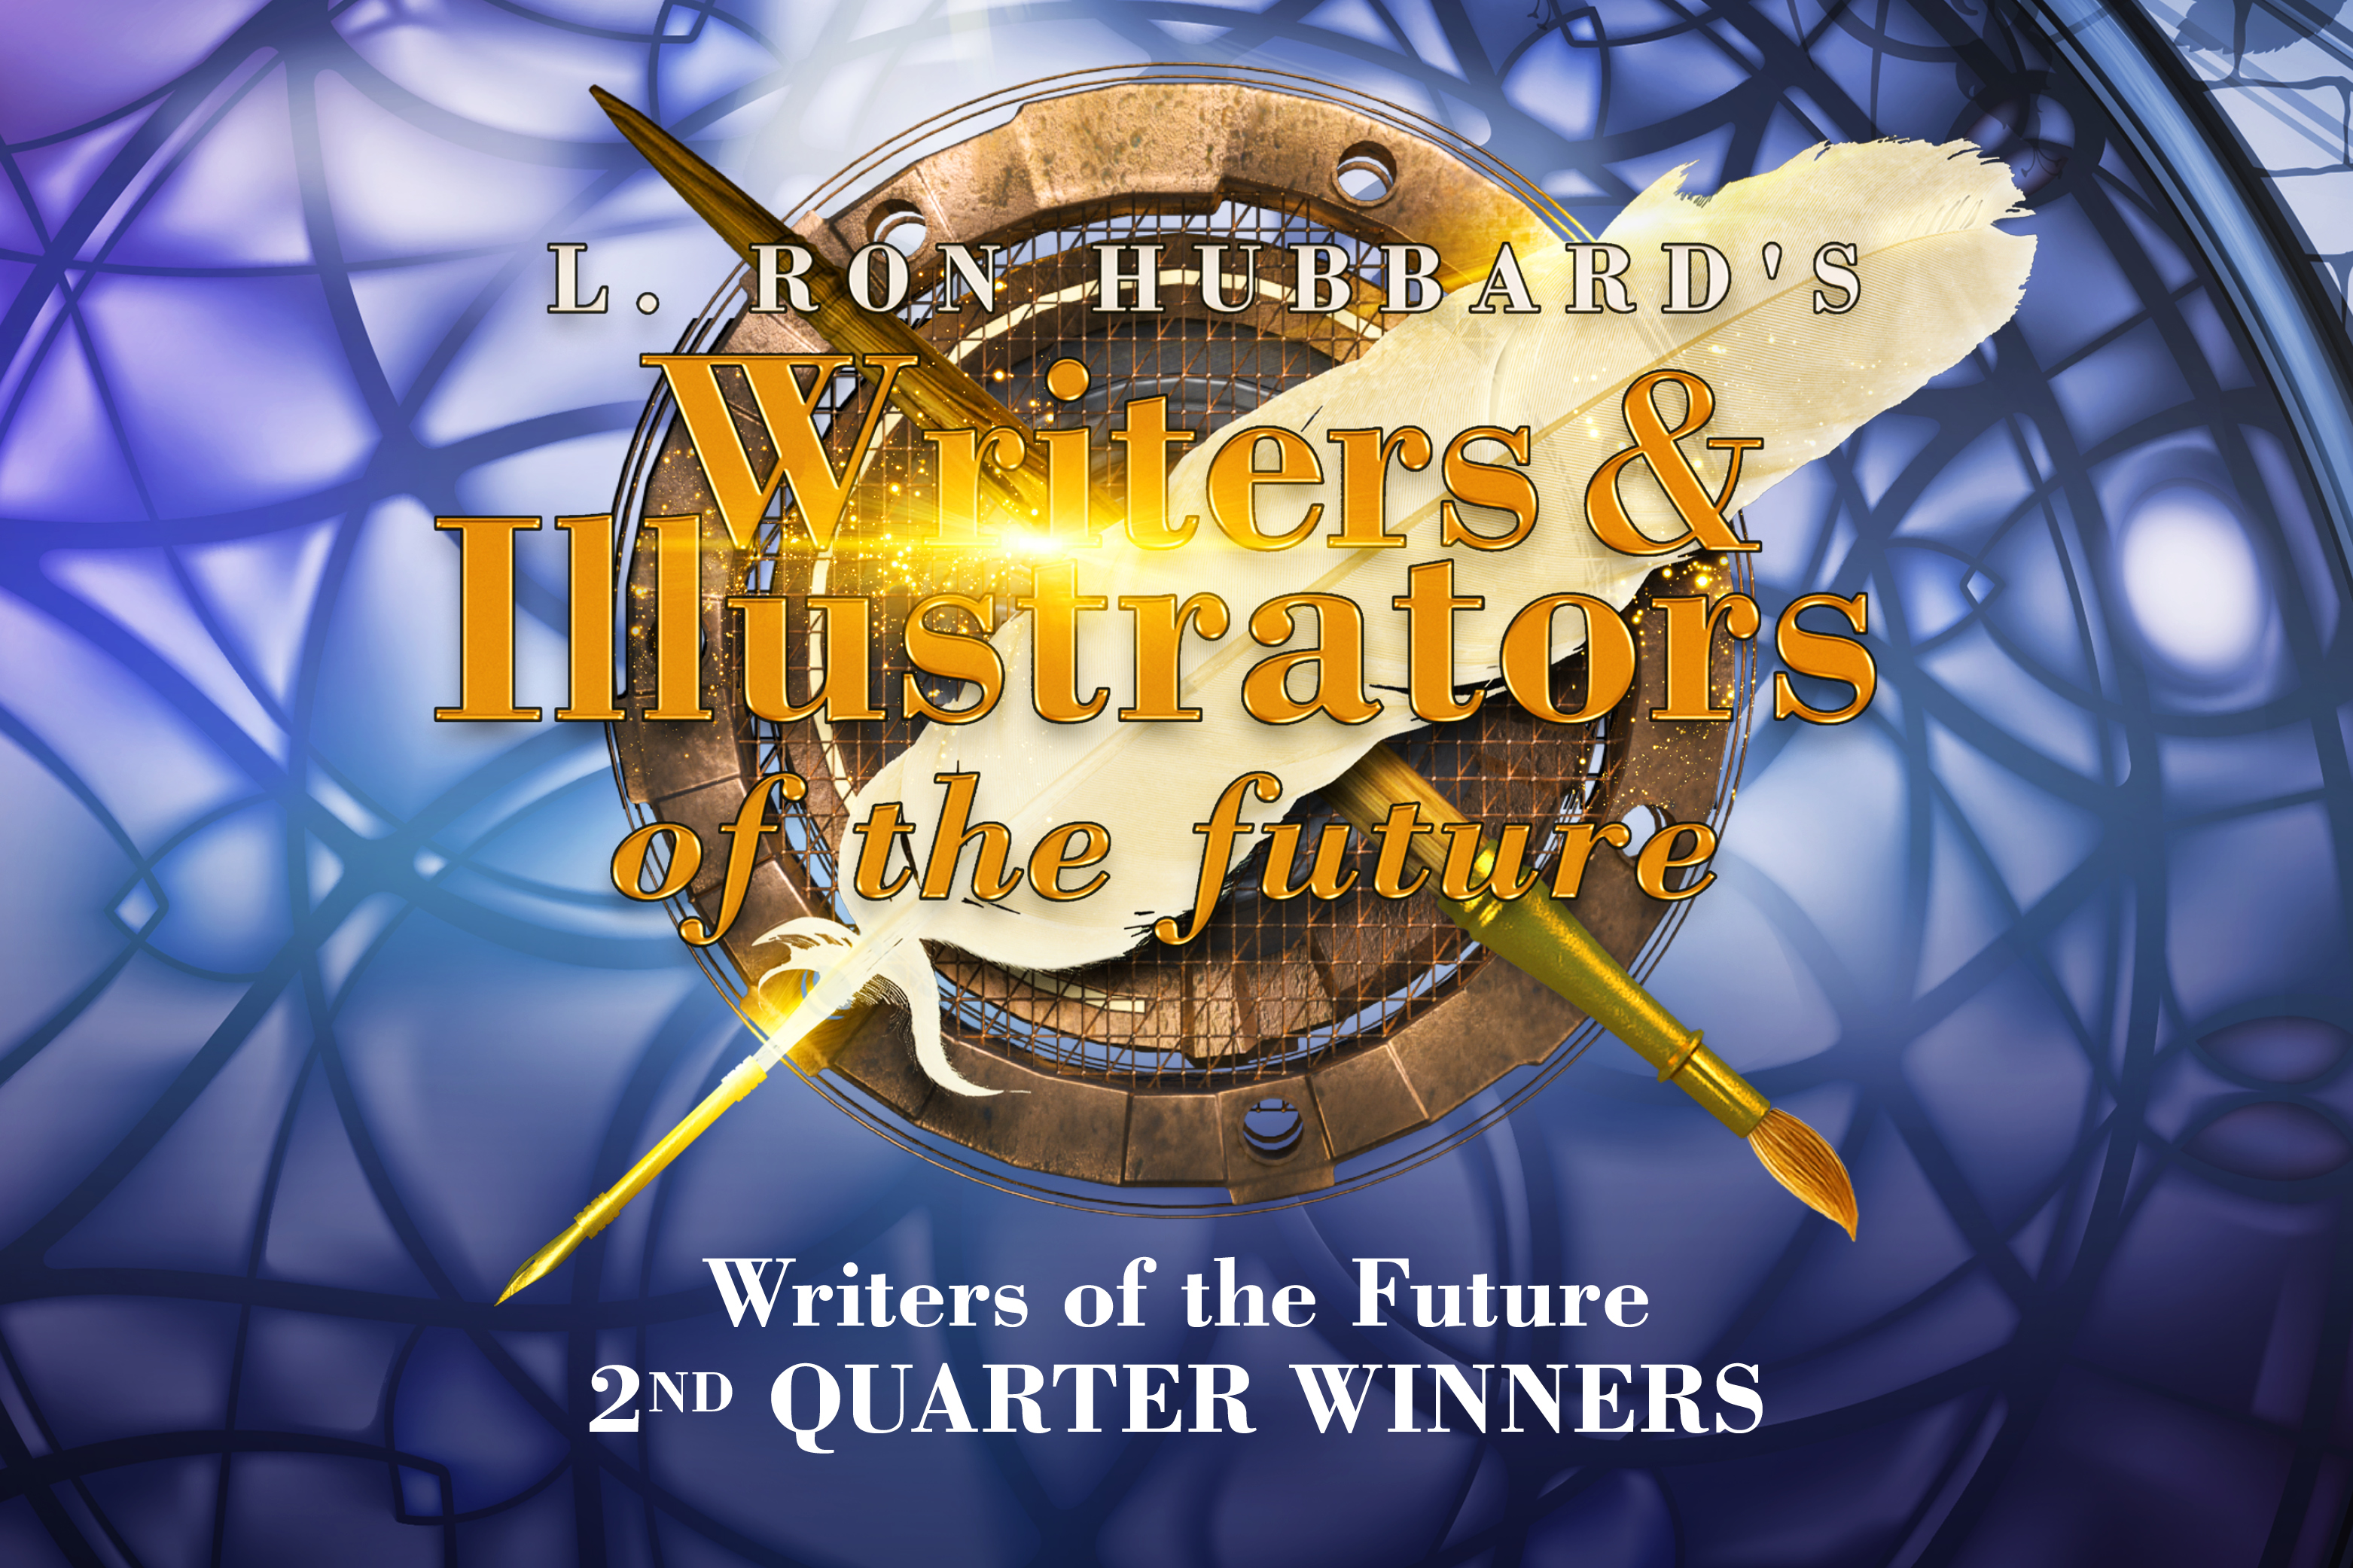 L. Ron Hubbard Writers & Illustrators of the Future 2nd quarter winners announced